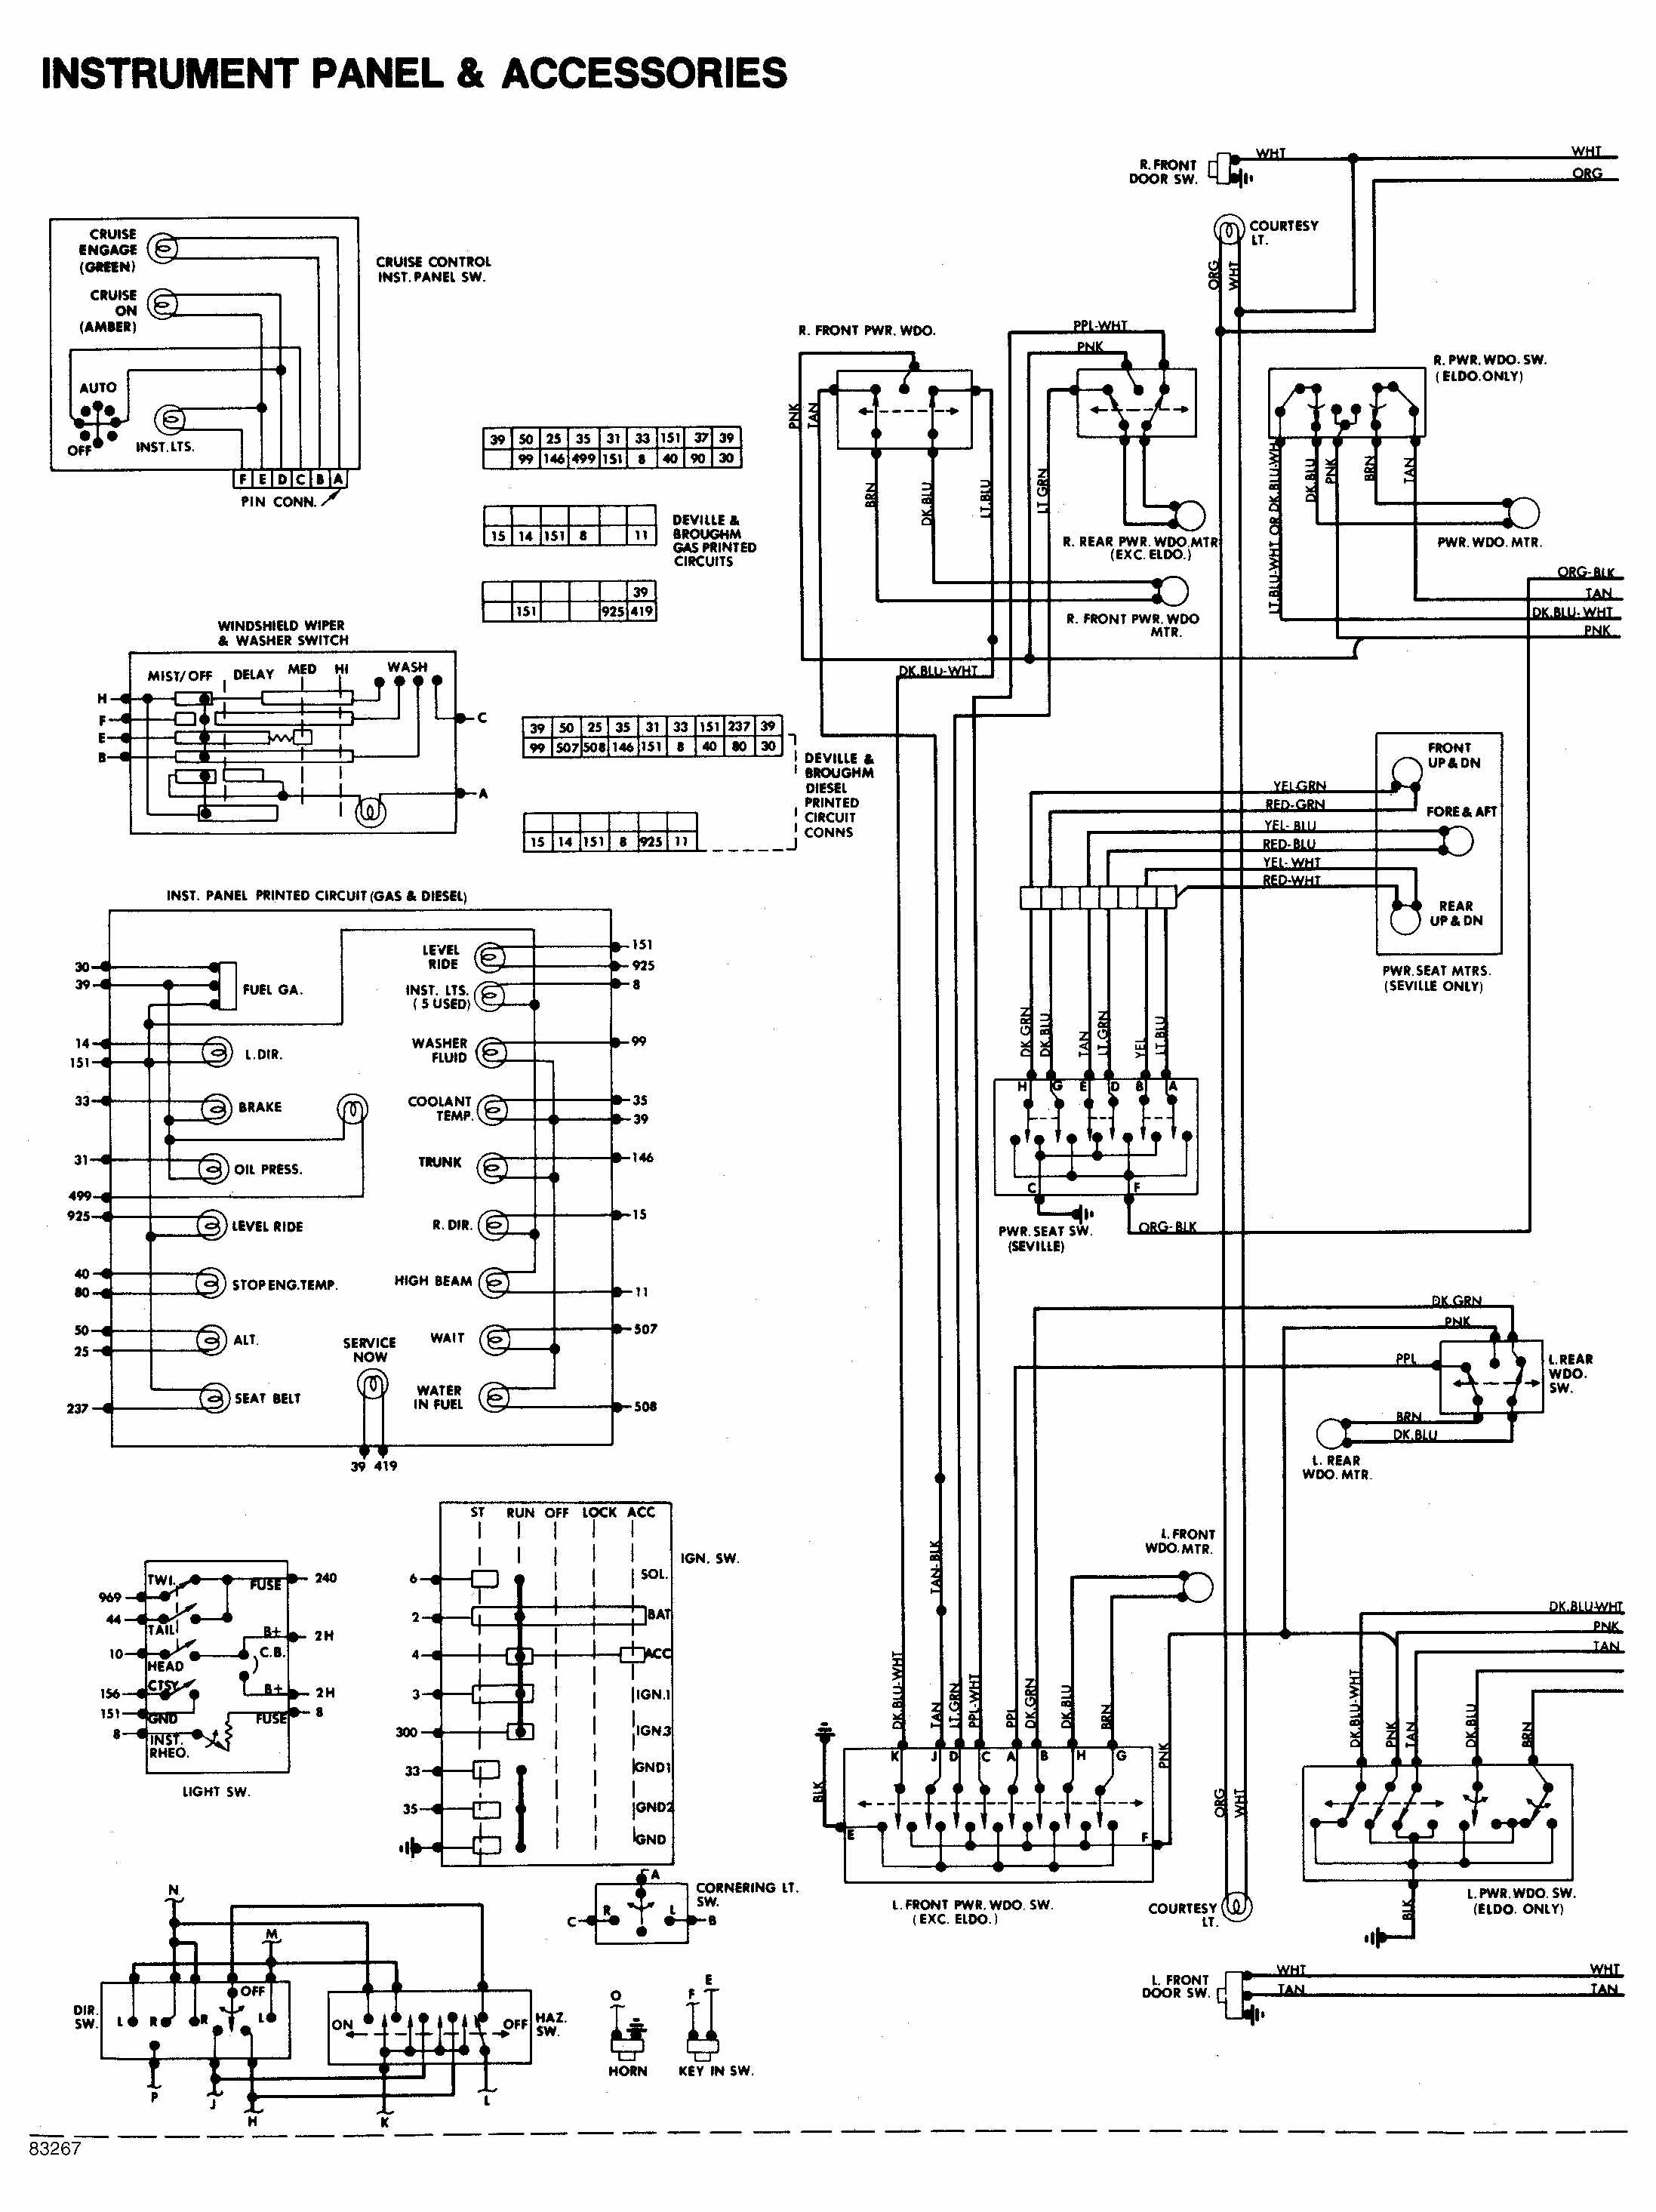 1999 Cadillac Deville Wiring Diagram | Wiring Diagram on internet of things diagrams, troubleshooting diagrams, motor diagrams, electrical diagrams, battery diagrams, smart car diagrams, friendship bracelet diagrams, engine diagrams, sincgars radio configurations diagrams, lighting diagrams, honda motorcycle repair diagrams, gmc fuse box diagrams, pinout diagrams, hvac diagrams, snatch block diagrams, series and parallel circuits diagrams, transformer diagrams, switch diagrams, electronic circuit diagrams, led circuit diagrams,